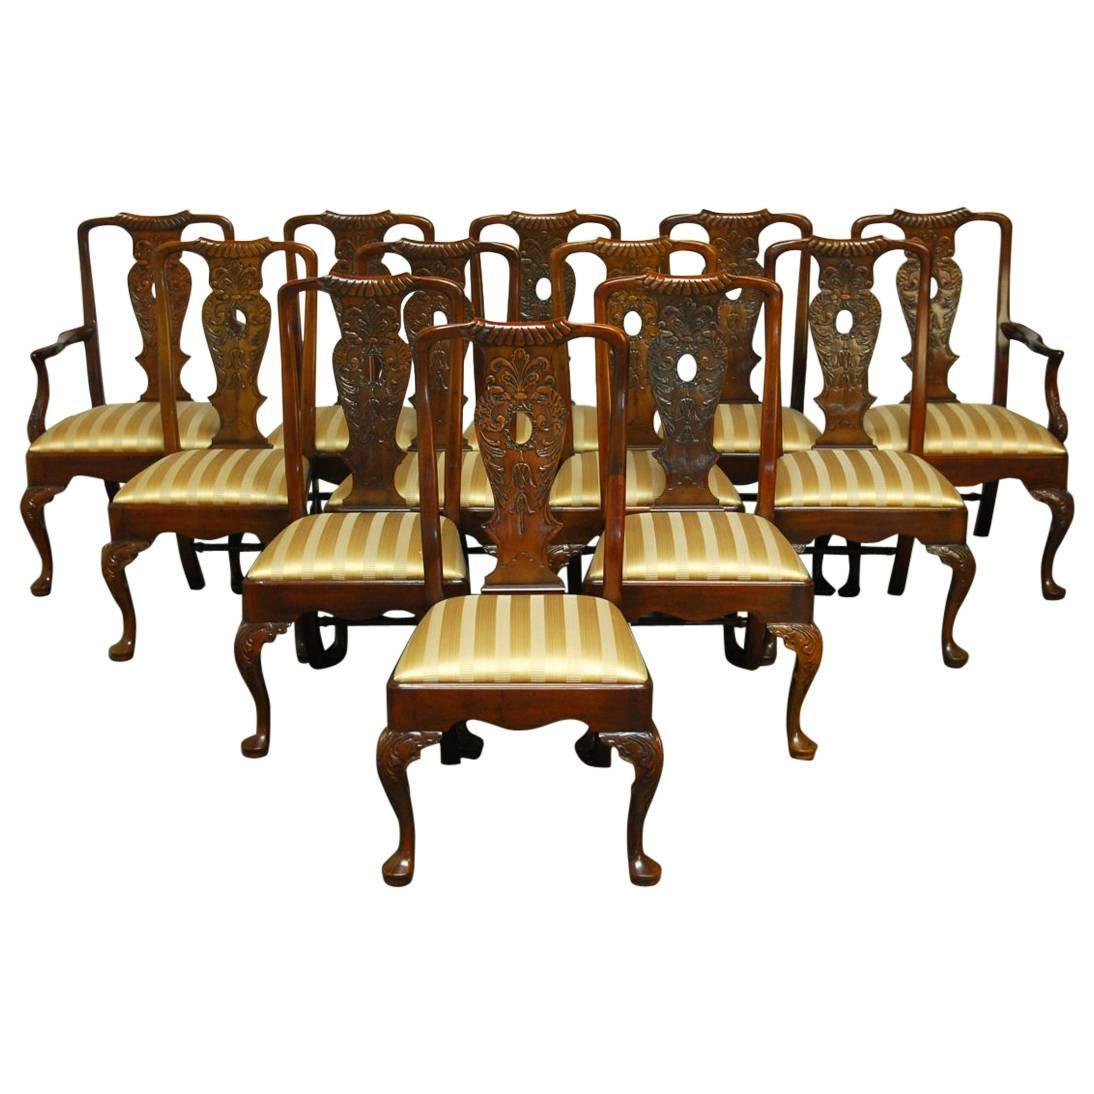 mahogany georgian style dining chairs by henredon for sale at 1stdibs